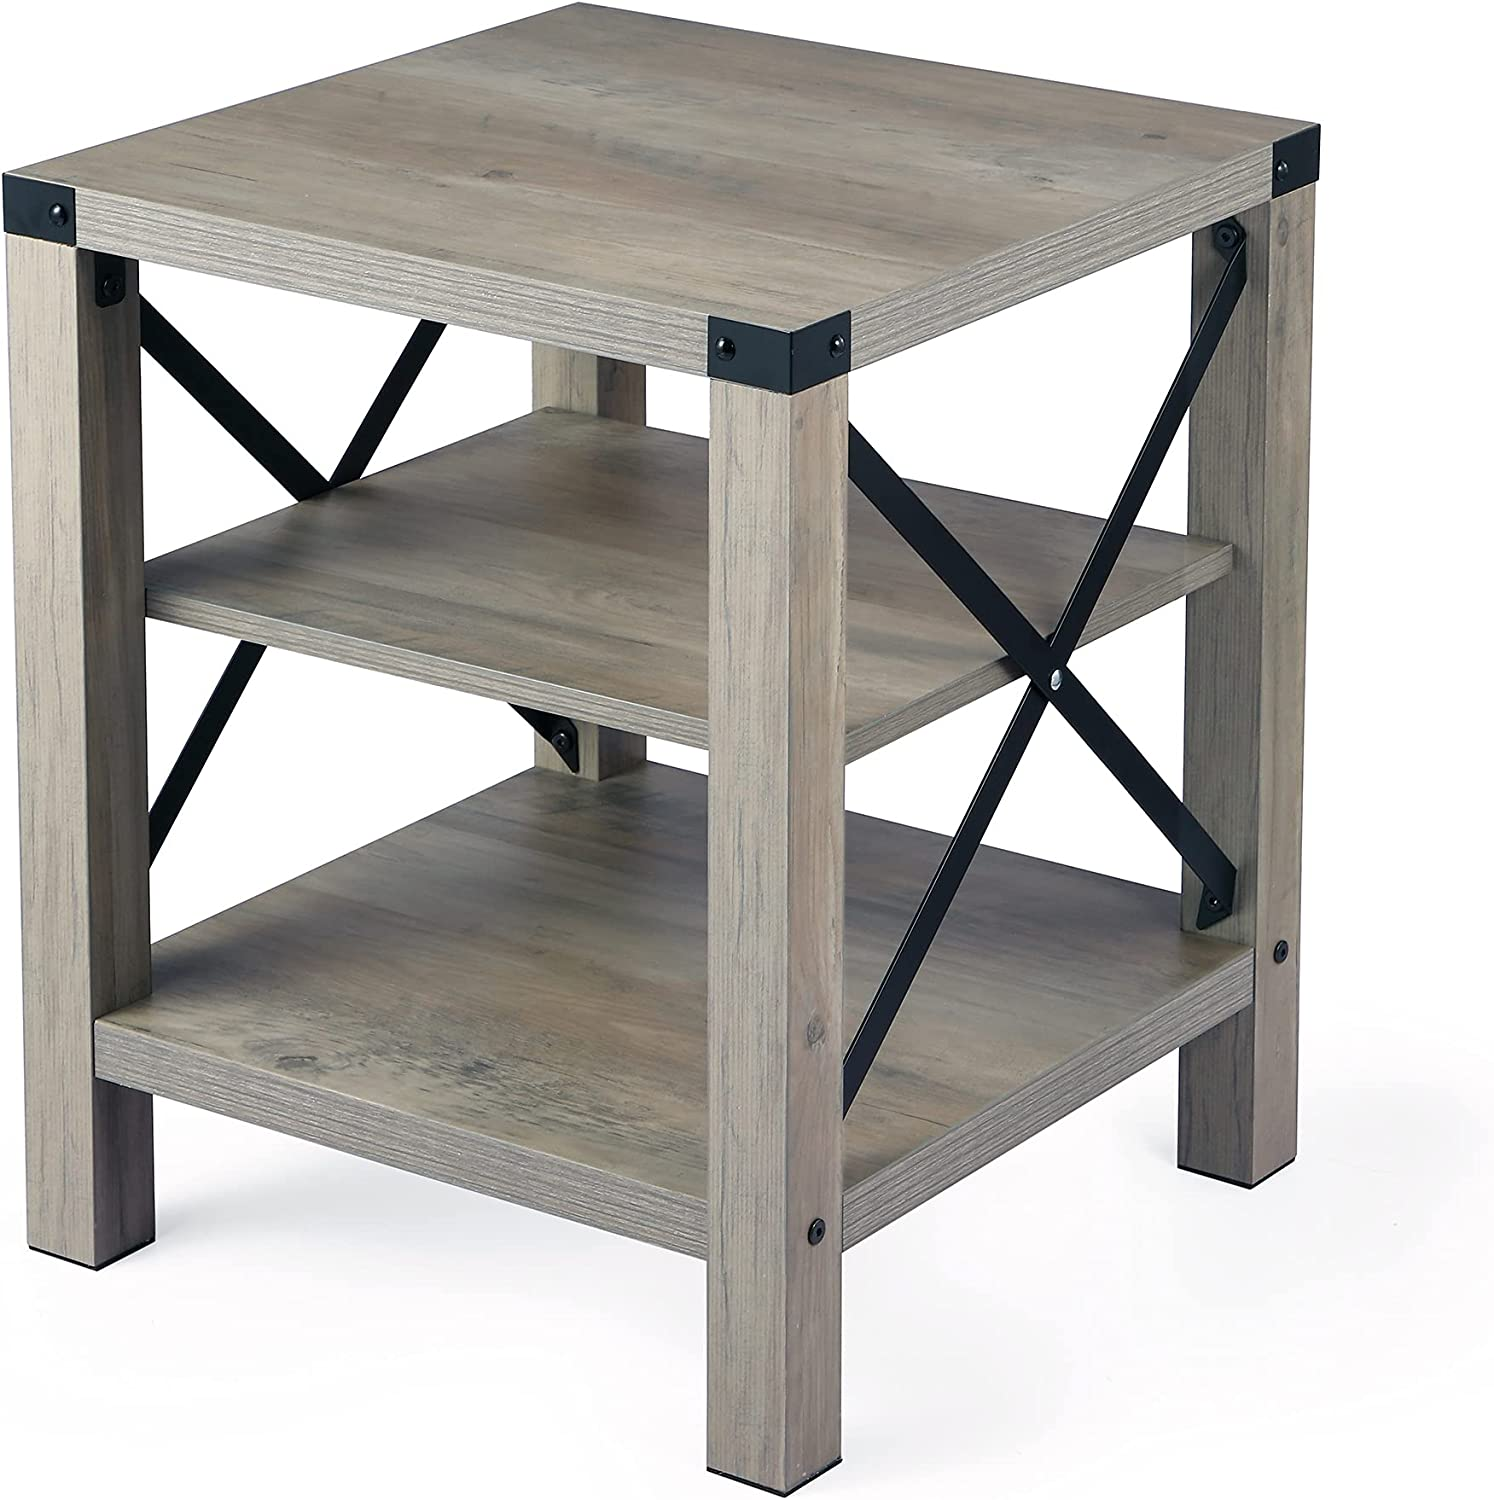 IDEALHOUSE Rustic End Table, Farmhouse Accent Cocktail Table Storage Shelf, Industrial Wood Look Tea Table, Sofa Center Table for Living Room, Side Table with X Metal Frame (End Table)